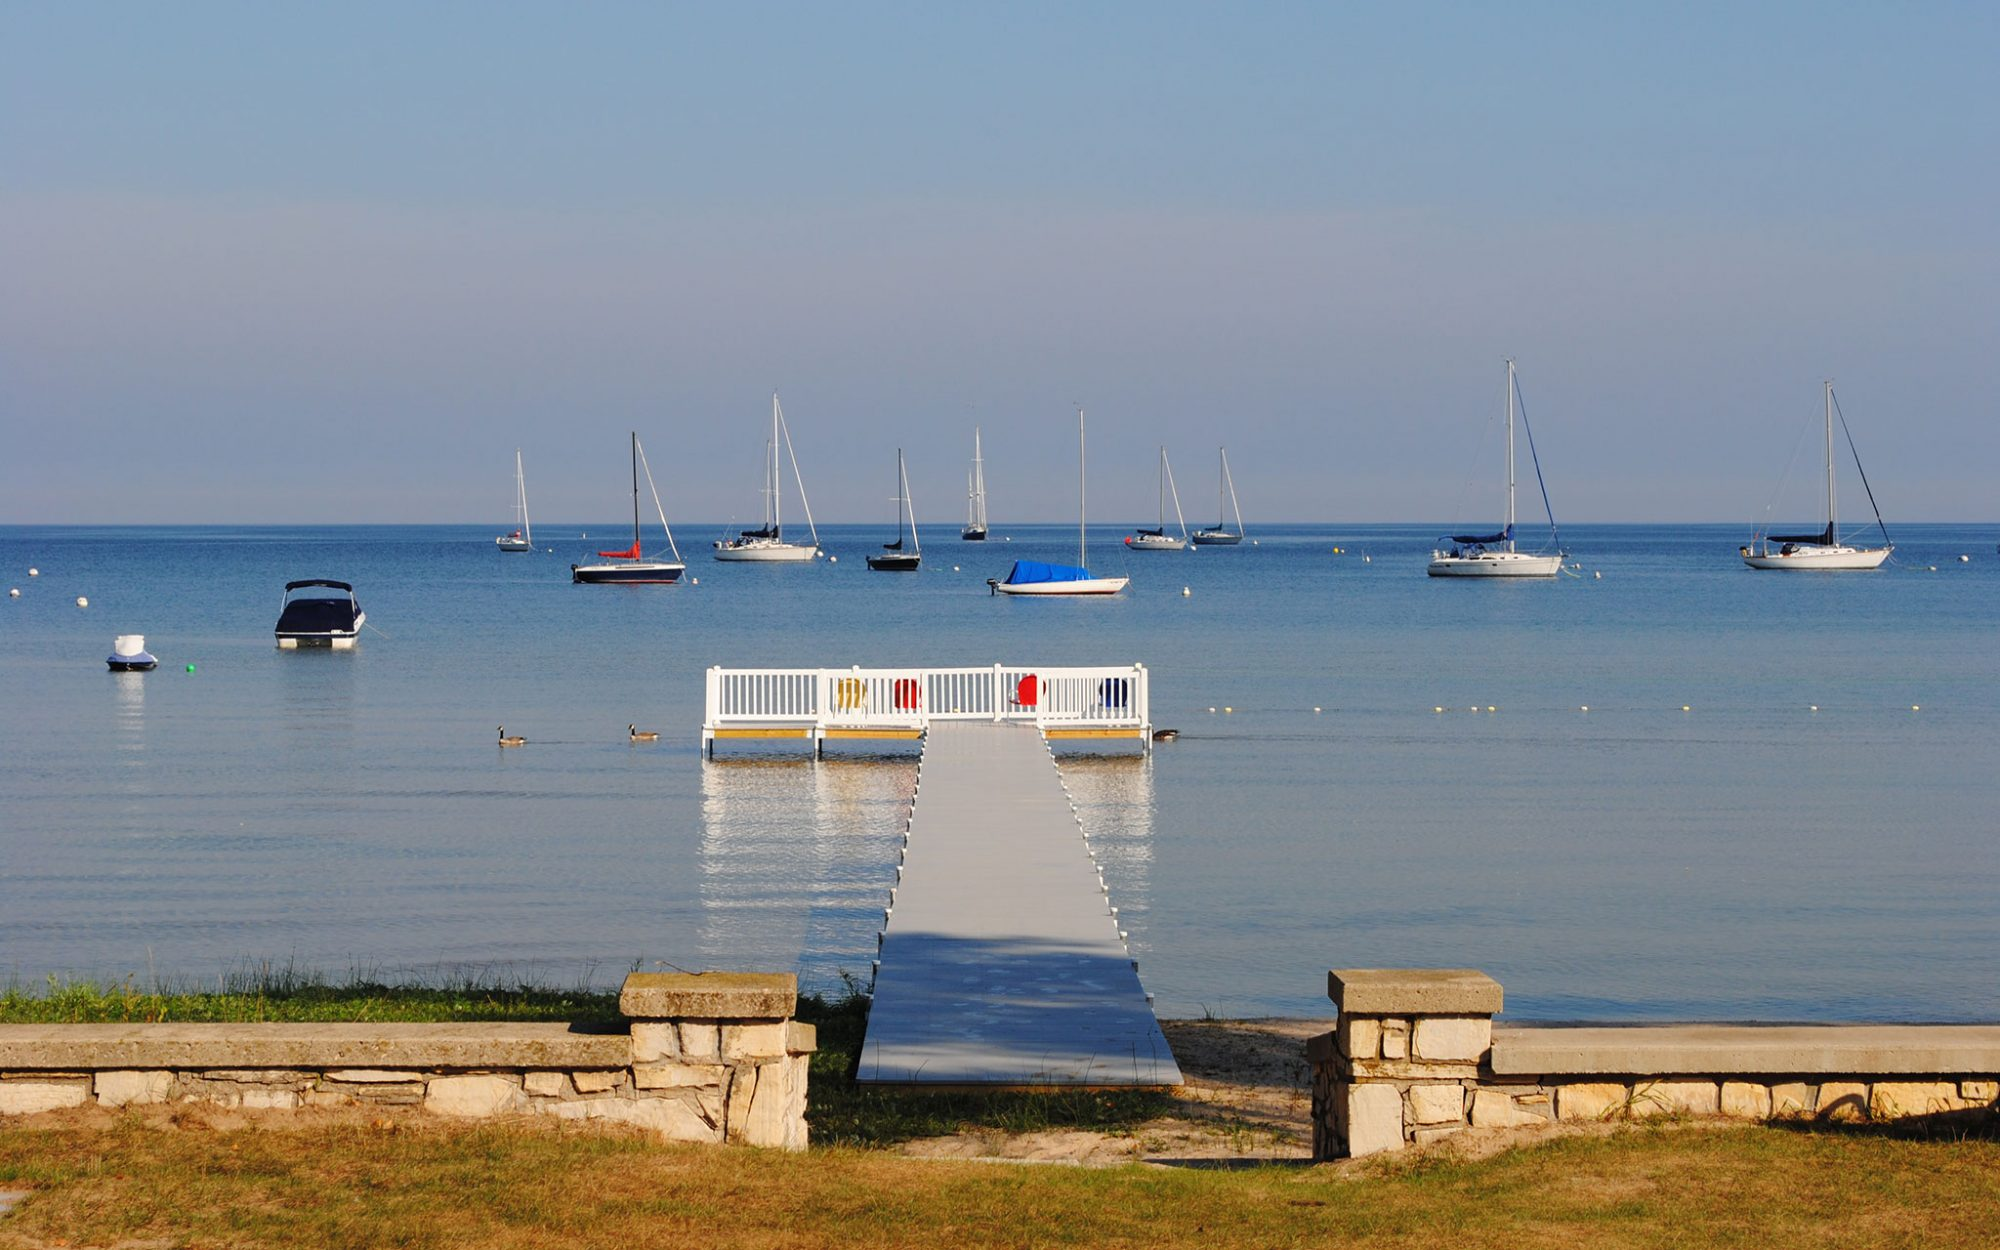 Best Beach Weekend Getaways: Great Outdoors in Door County, WI